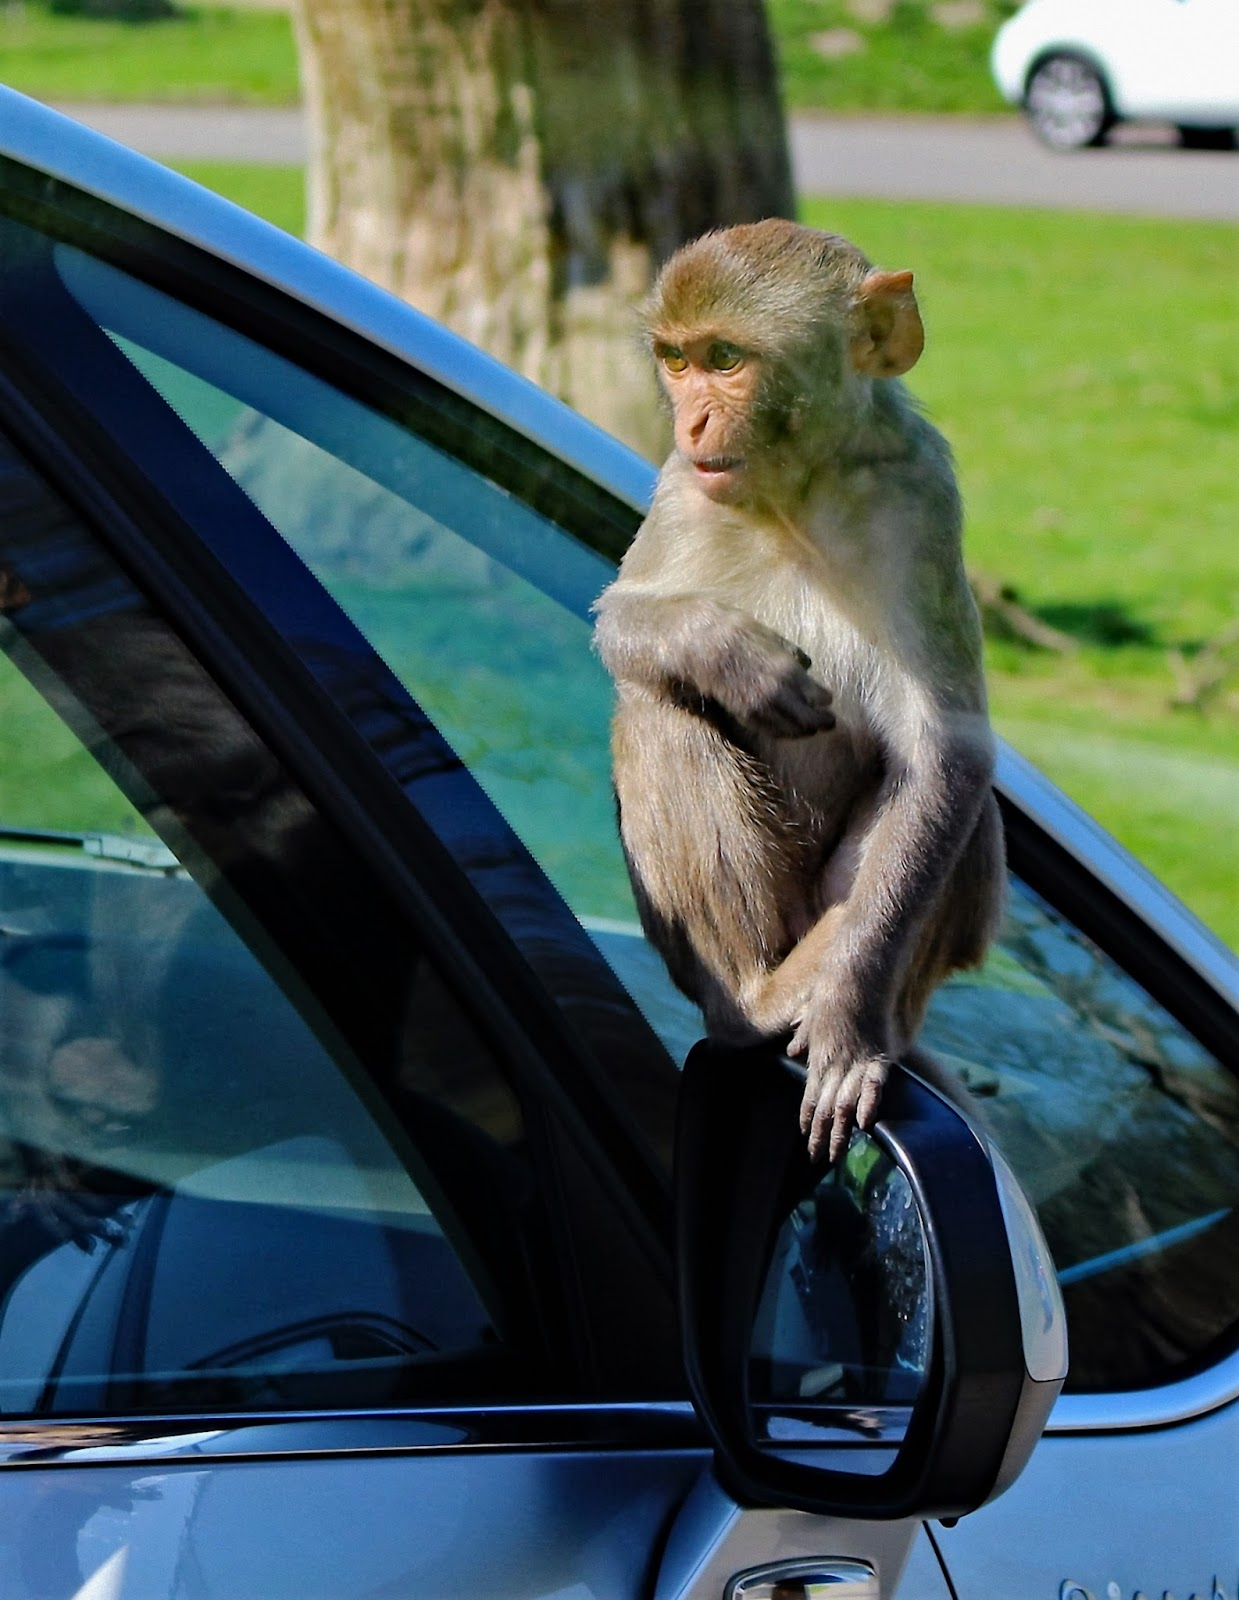 A funny picture of rhesus monkey.